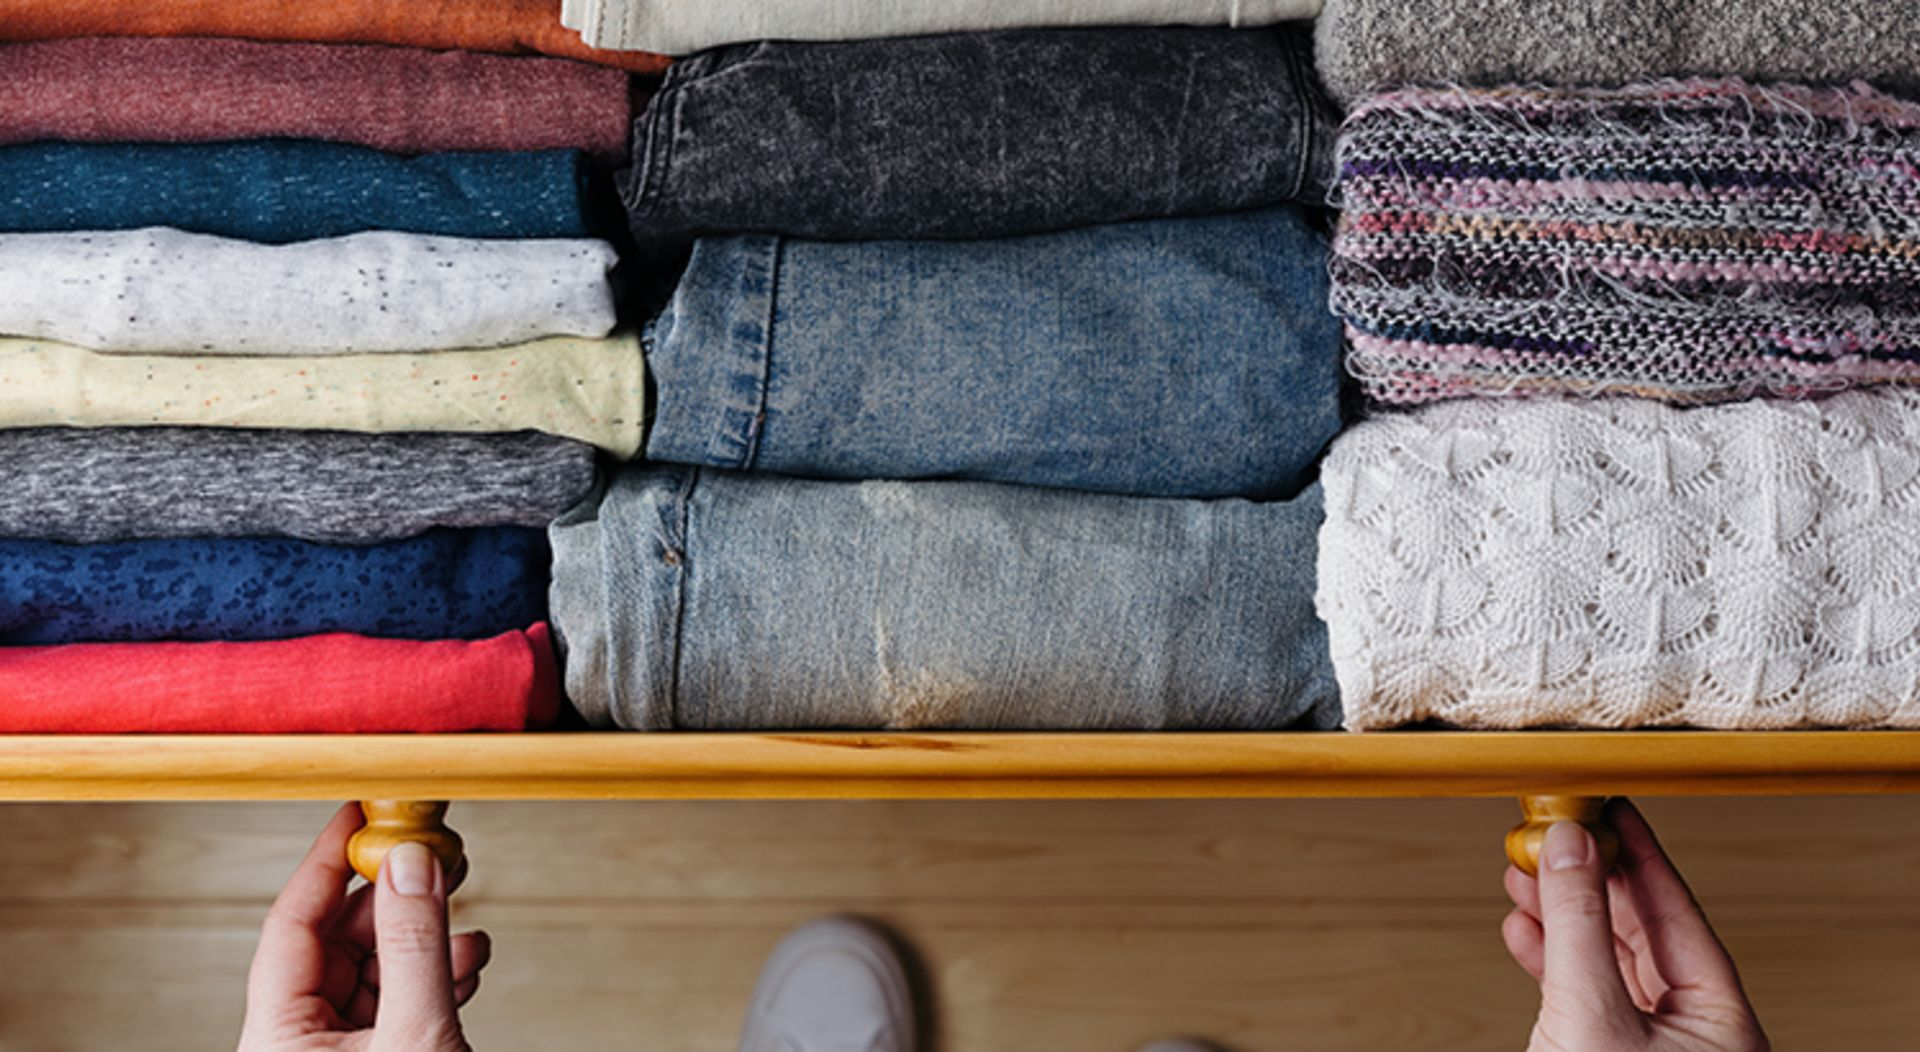 The KonMari Method: Helping You Prep Your House For Sale